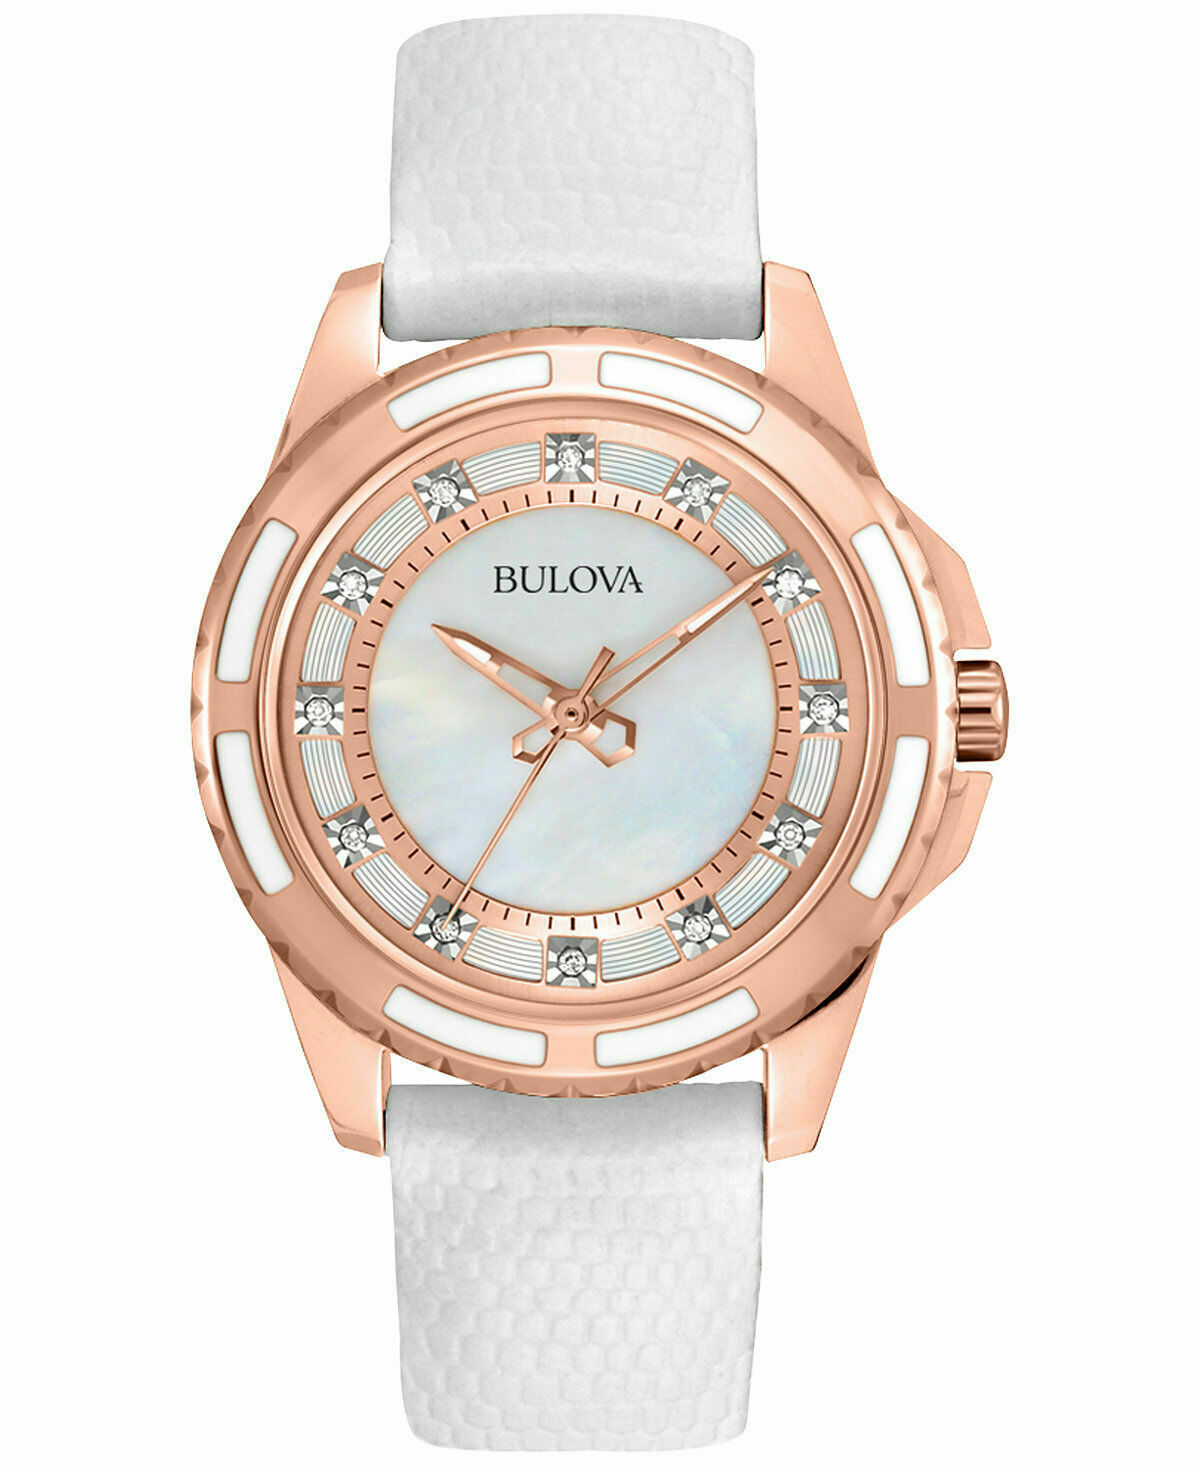 Bulova 98P119 Dress Mother Of Pearl Dial Leather Strap Ladie